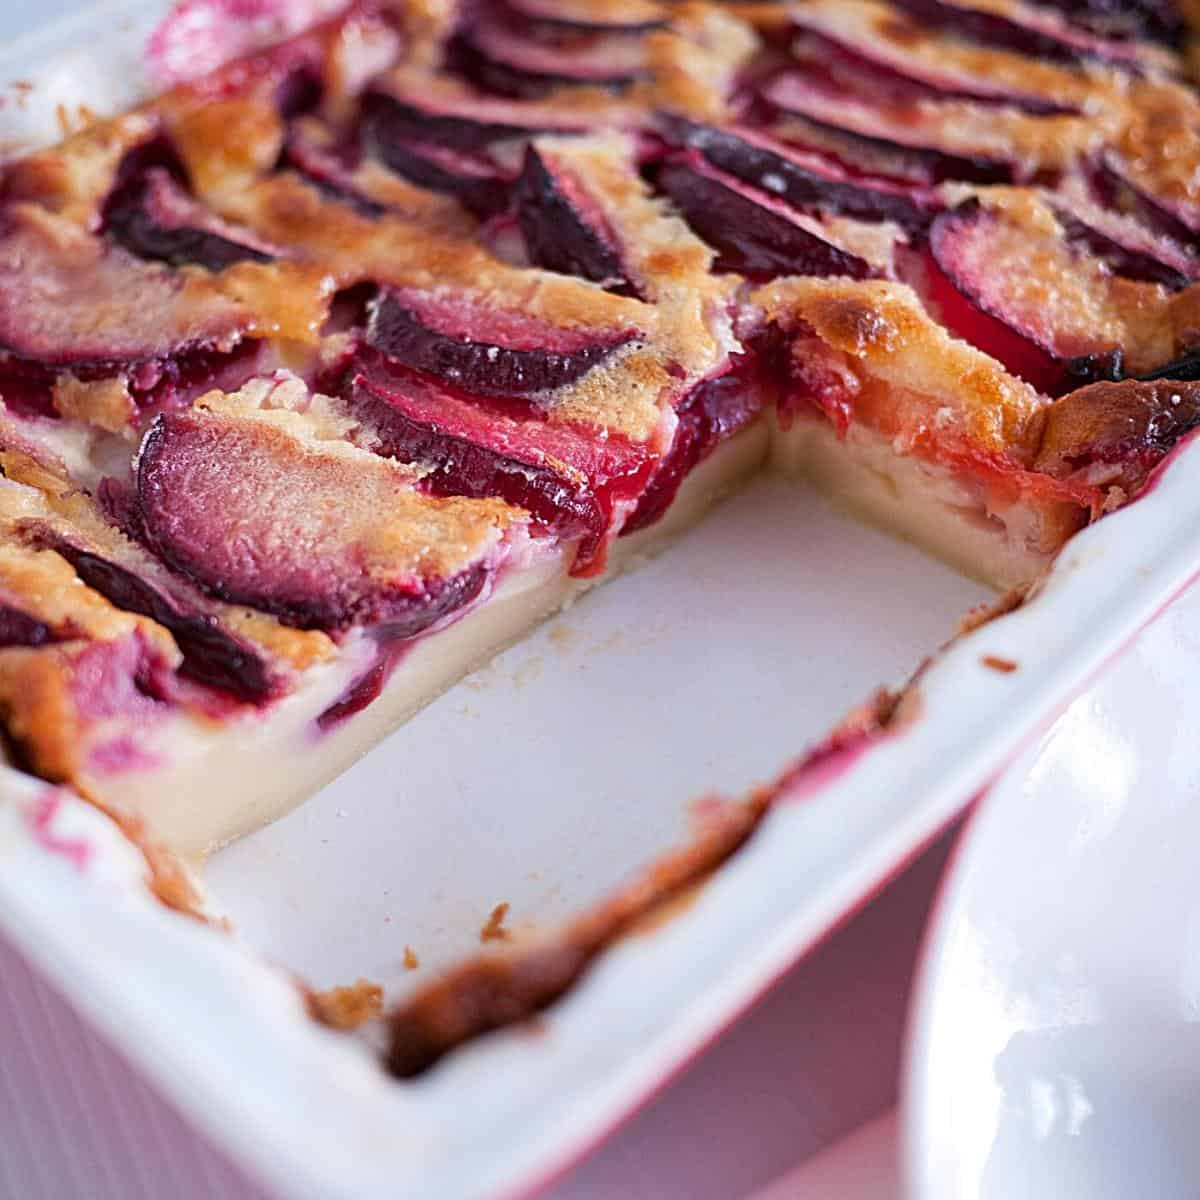 A sliced baking dish with clafoutis.